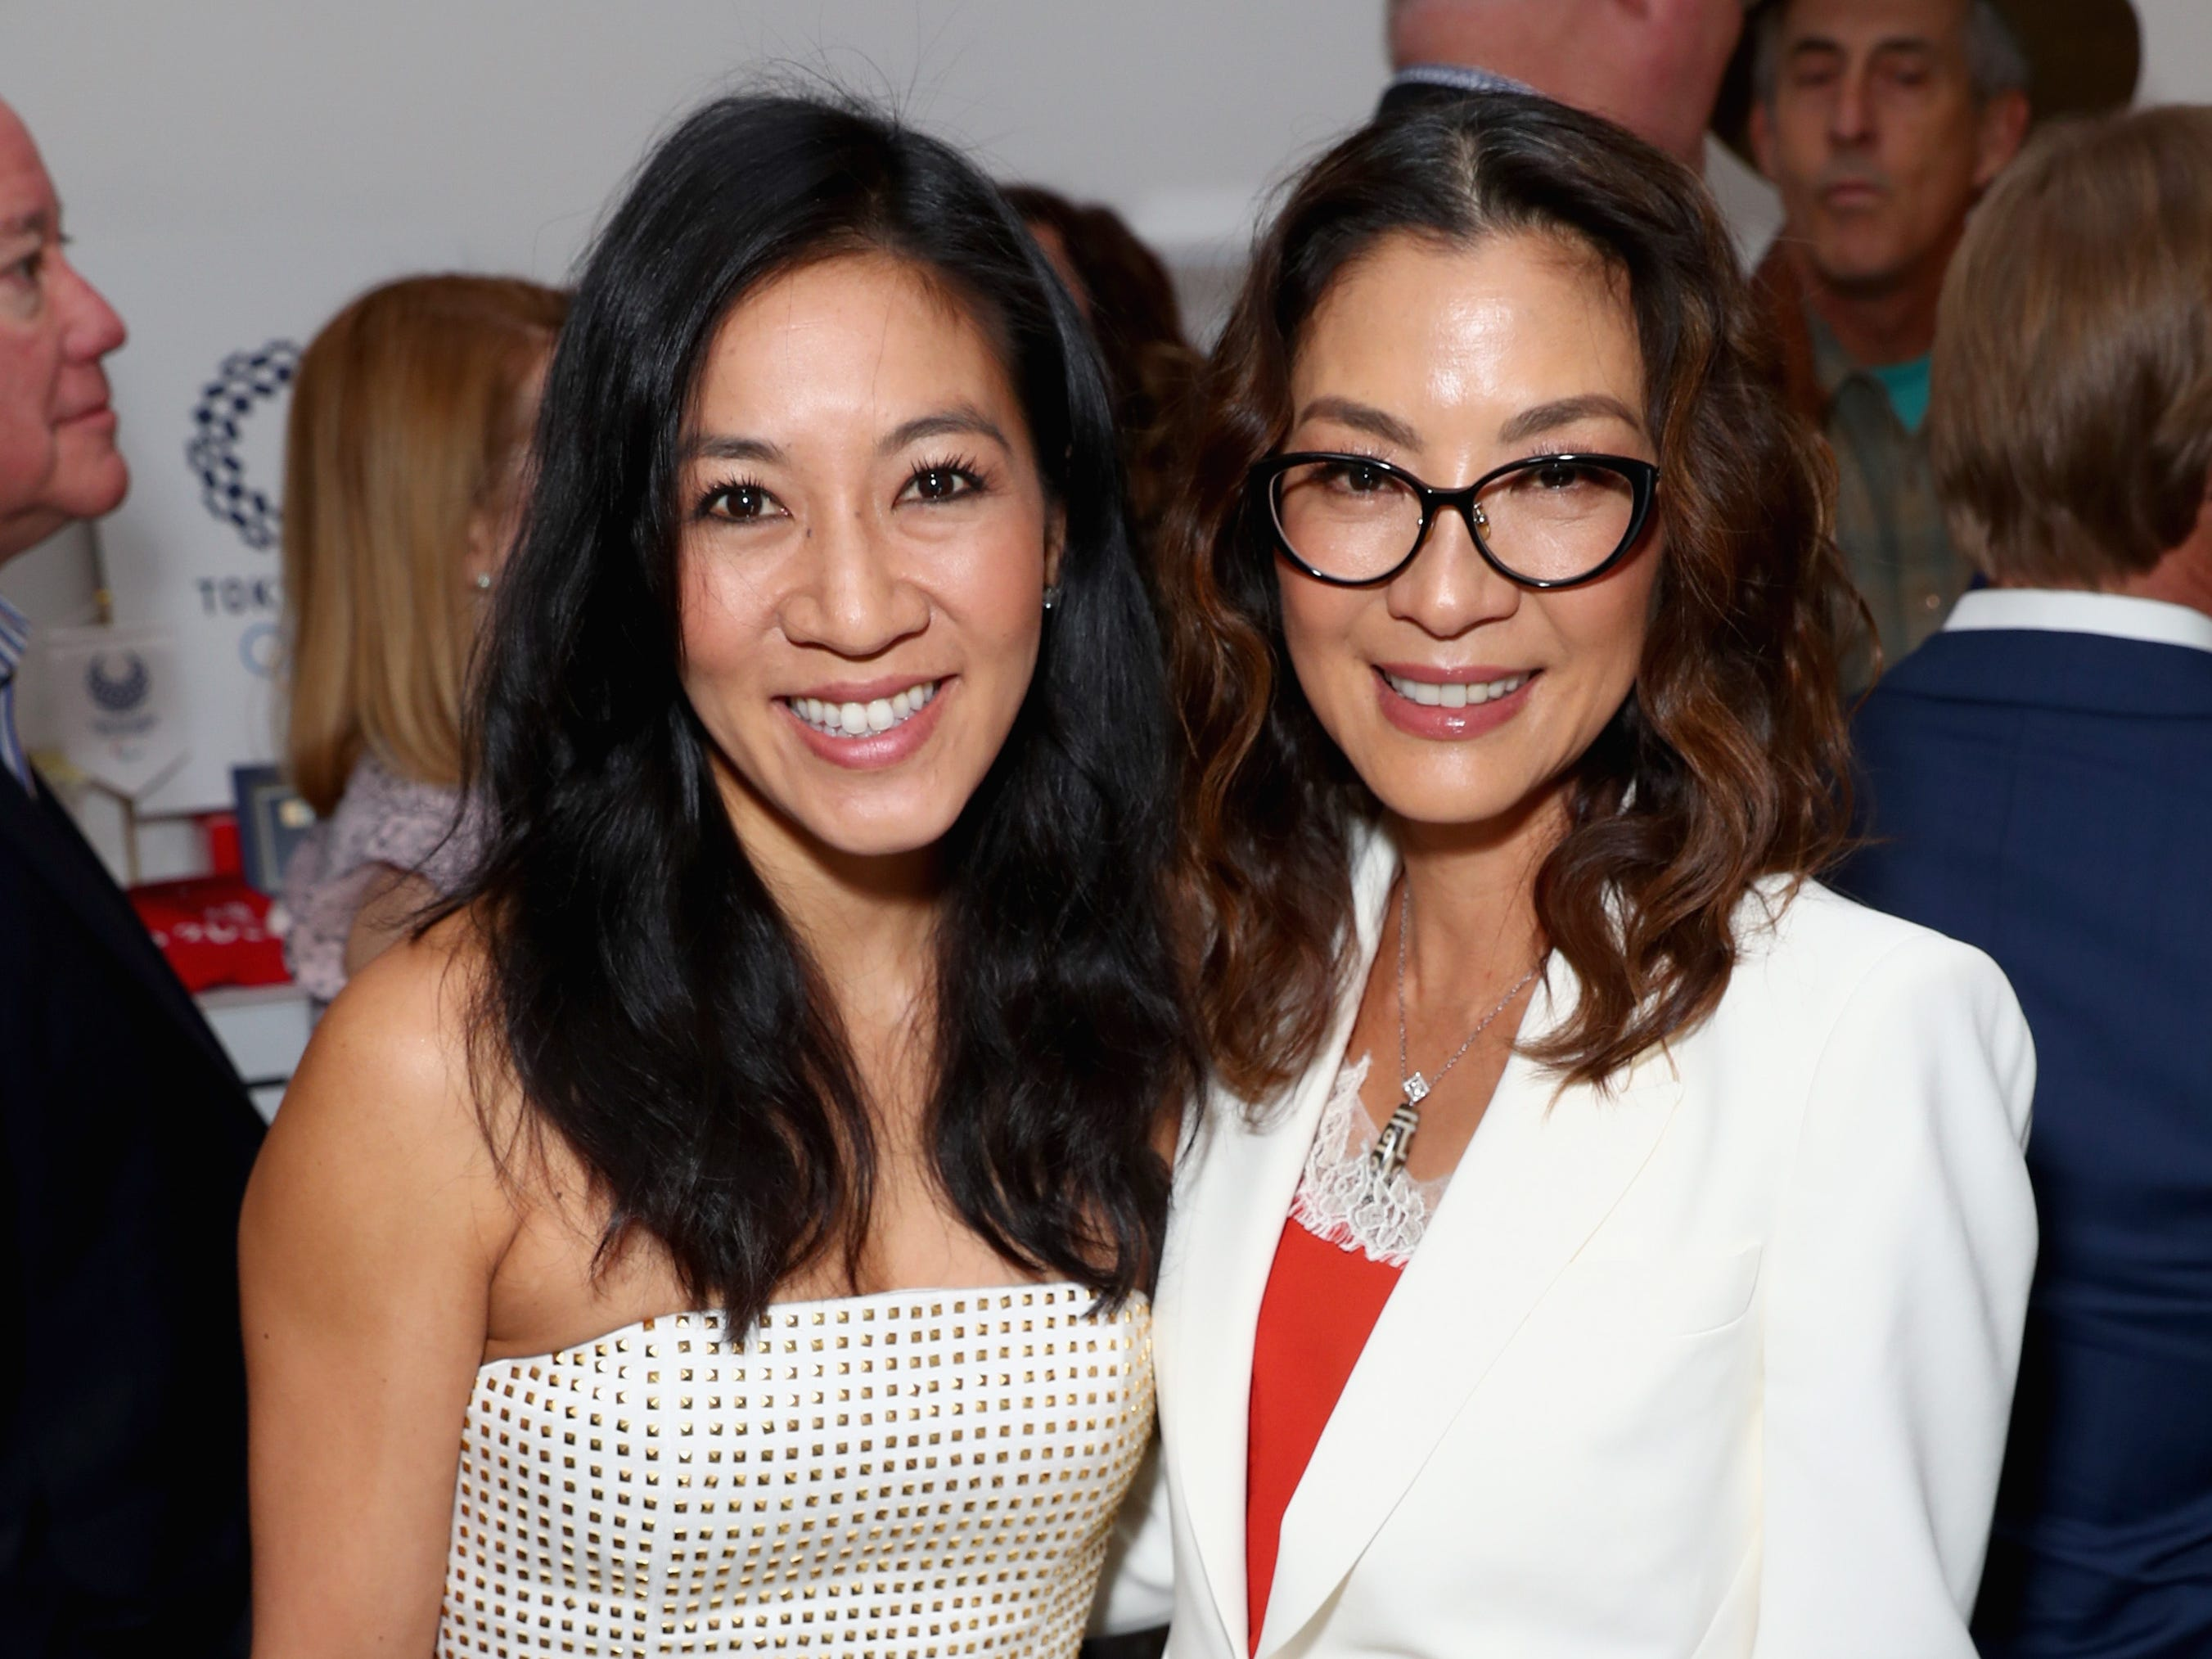 """WEST HOLLYWOOD, CA - JANUARY 05: Michelle Kwan (L) and Michelle Yeoh attend The 6th Annual """"Gold Meets Golden"""" Brunch, hosted by Nicole Kidman and Nadia Comaneci and presented by Coca-Cola at The House on Sunset on January 5, 2019 in West Hollywood, California.  (Photo by Joe Scarnici/Getty Images for Gold Meets Golden) ORG XMIT: 775276799 ORIG FILE ID: 1077928920"""